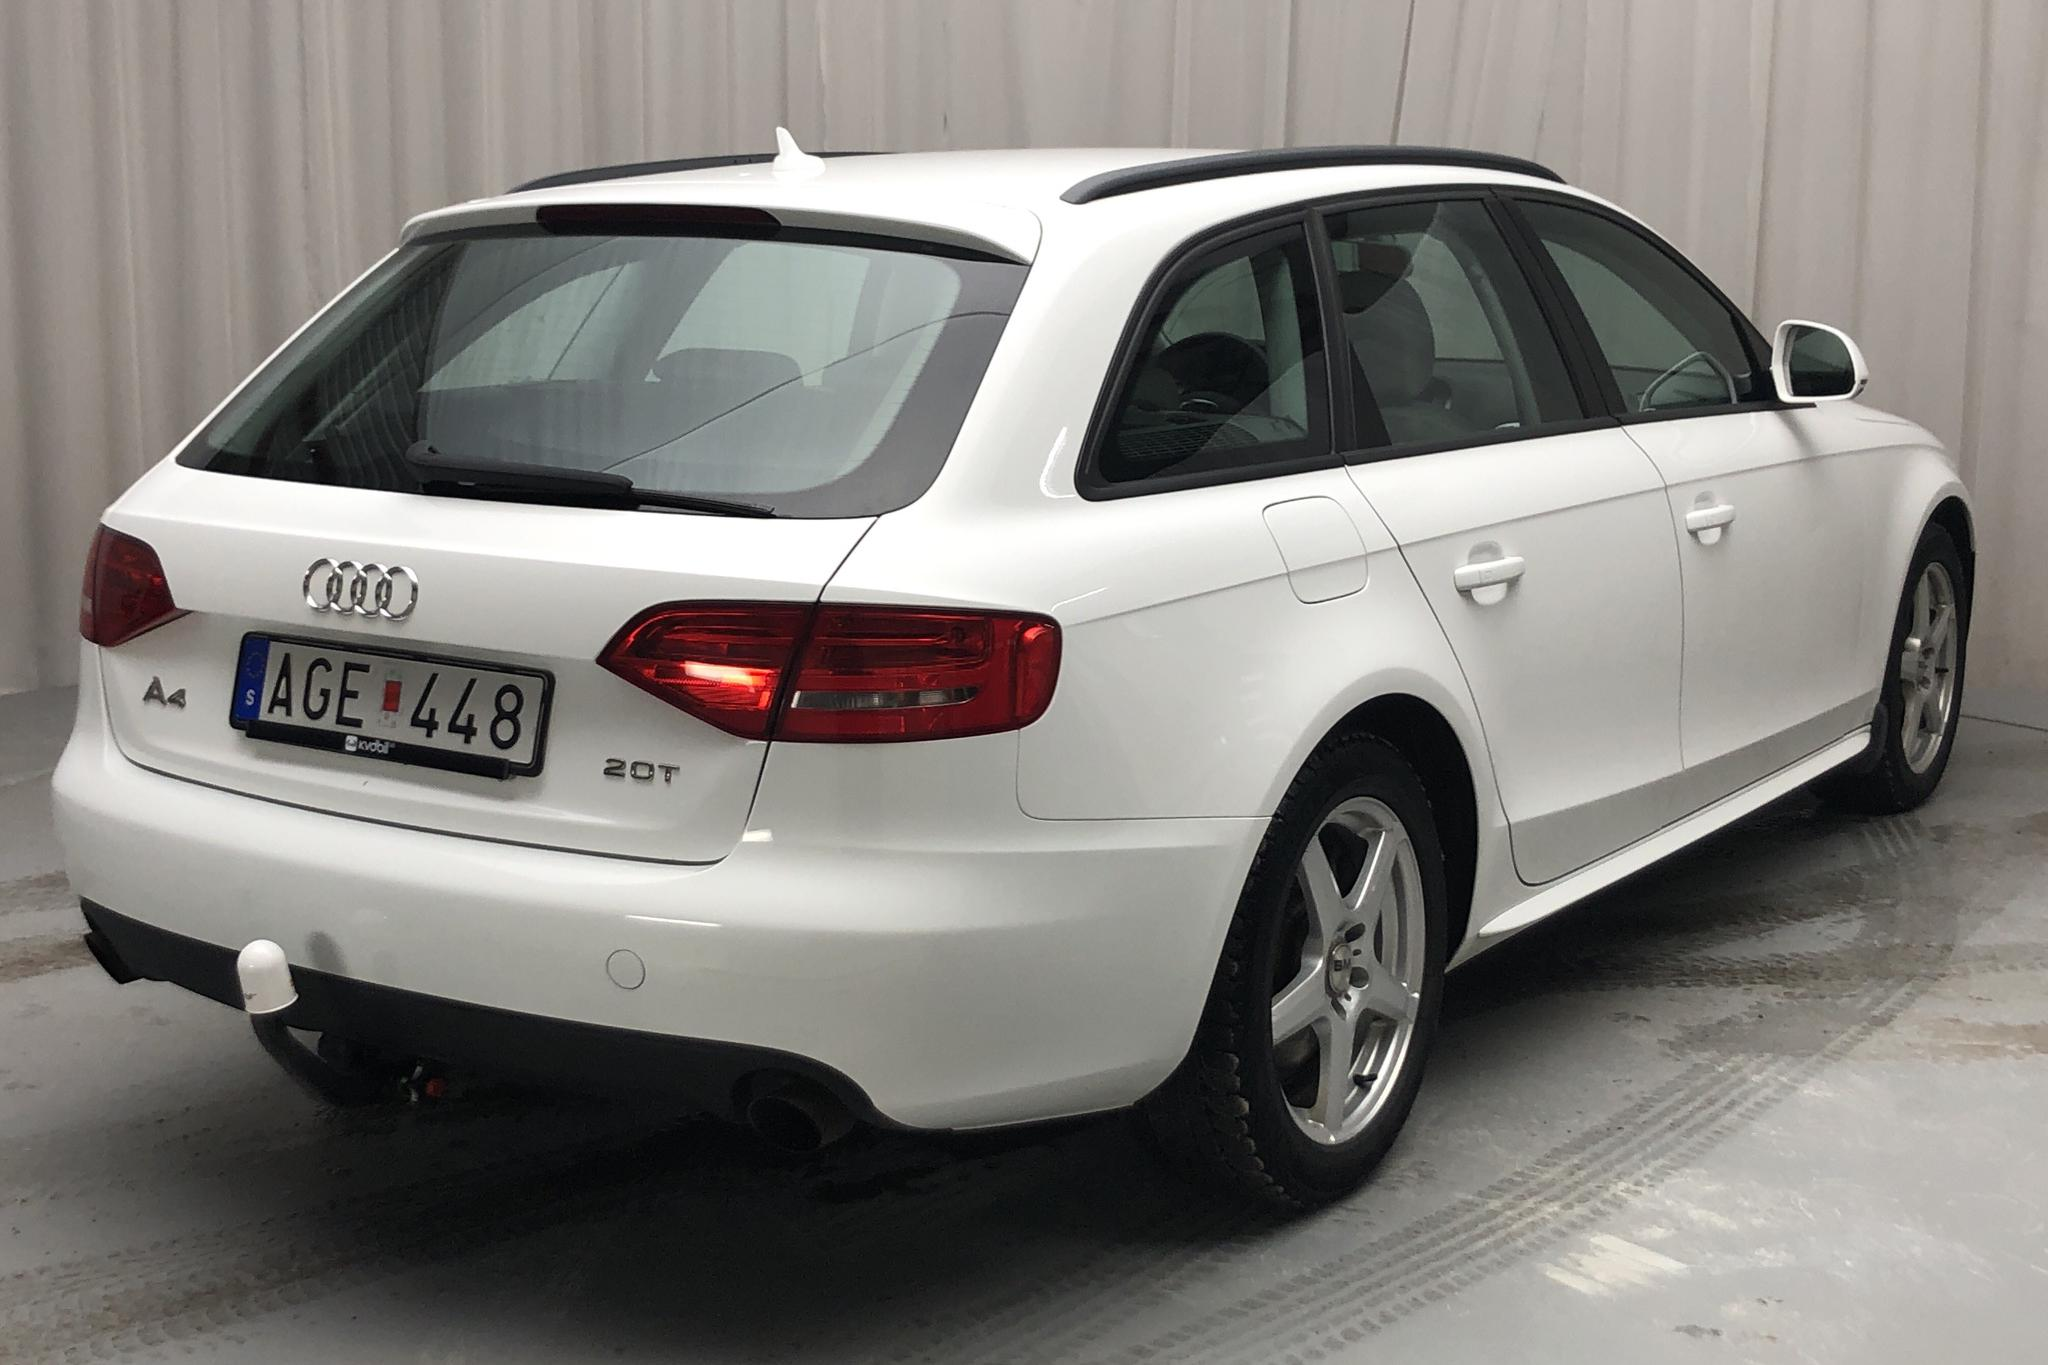 Audi A4 2.0 TFSI Avant (211hk) - 92 510 km - Manual - white - 2009